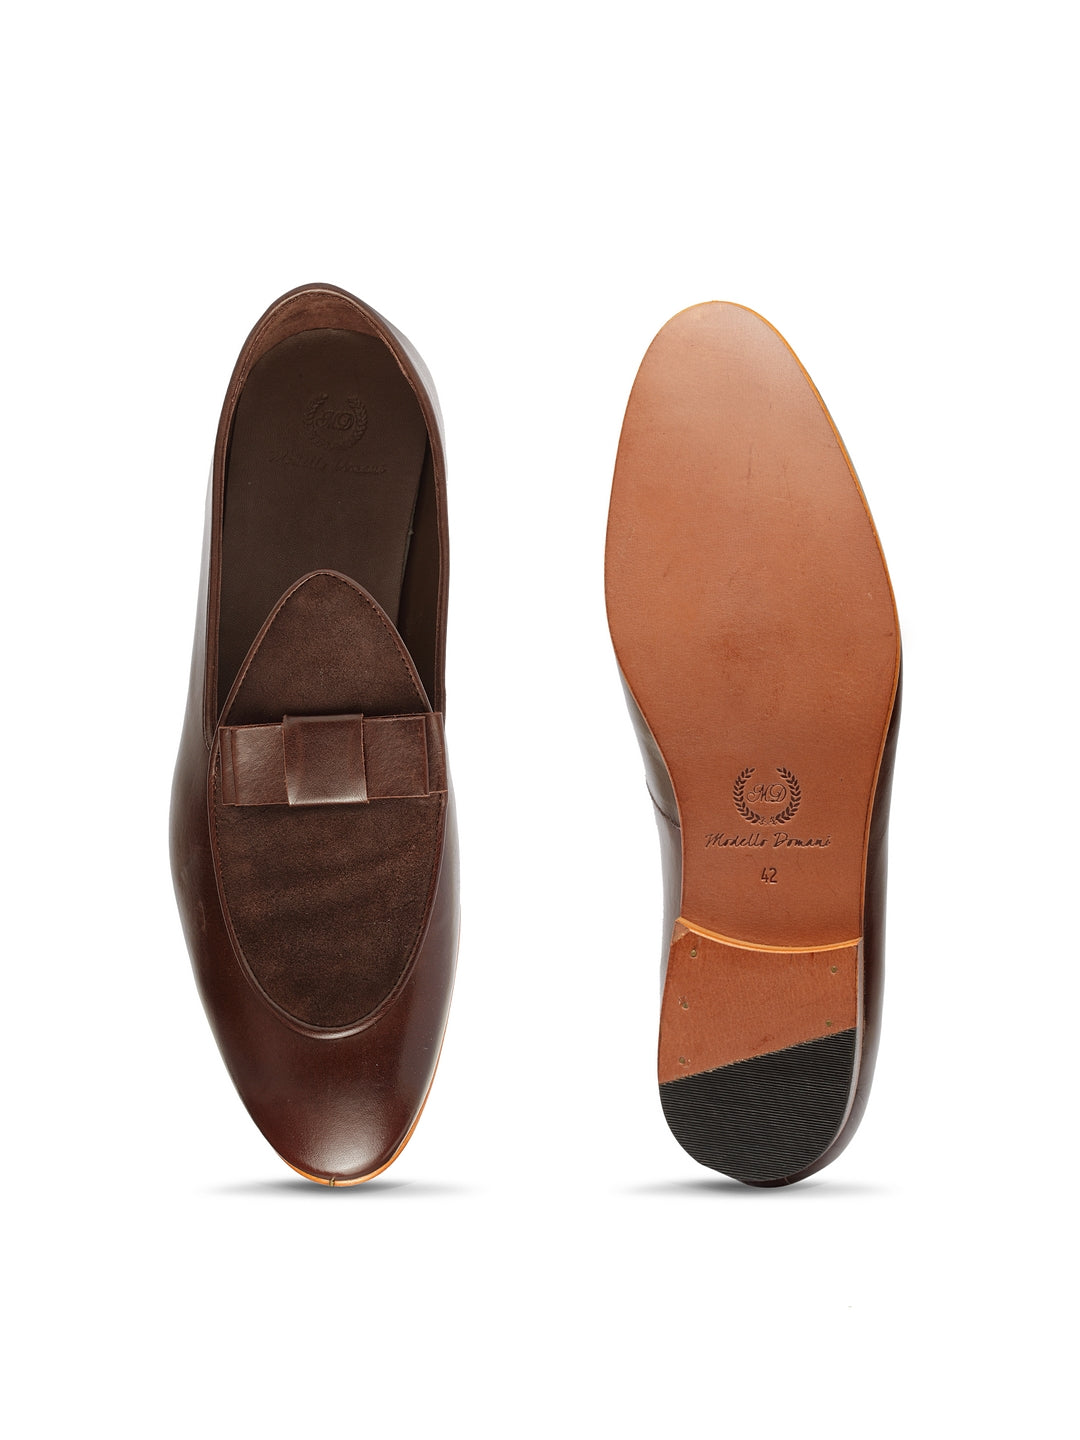 Spanish Cut Leather-Suede Bowtie Slipons